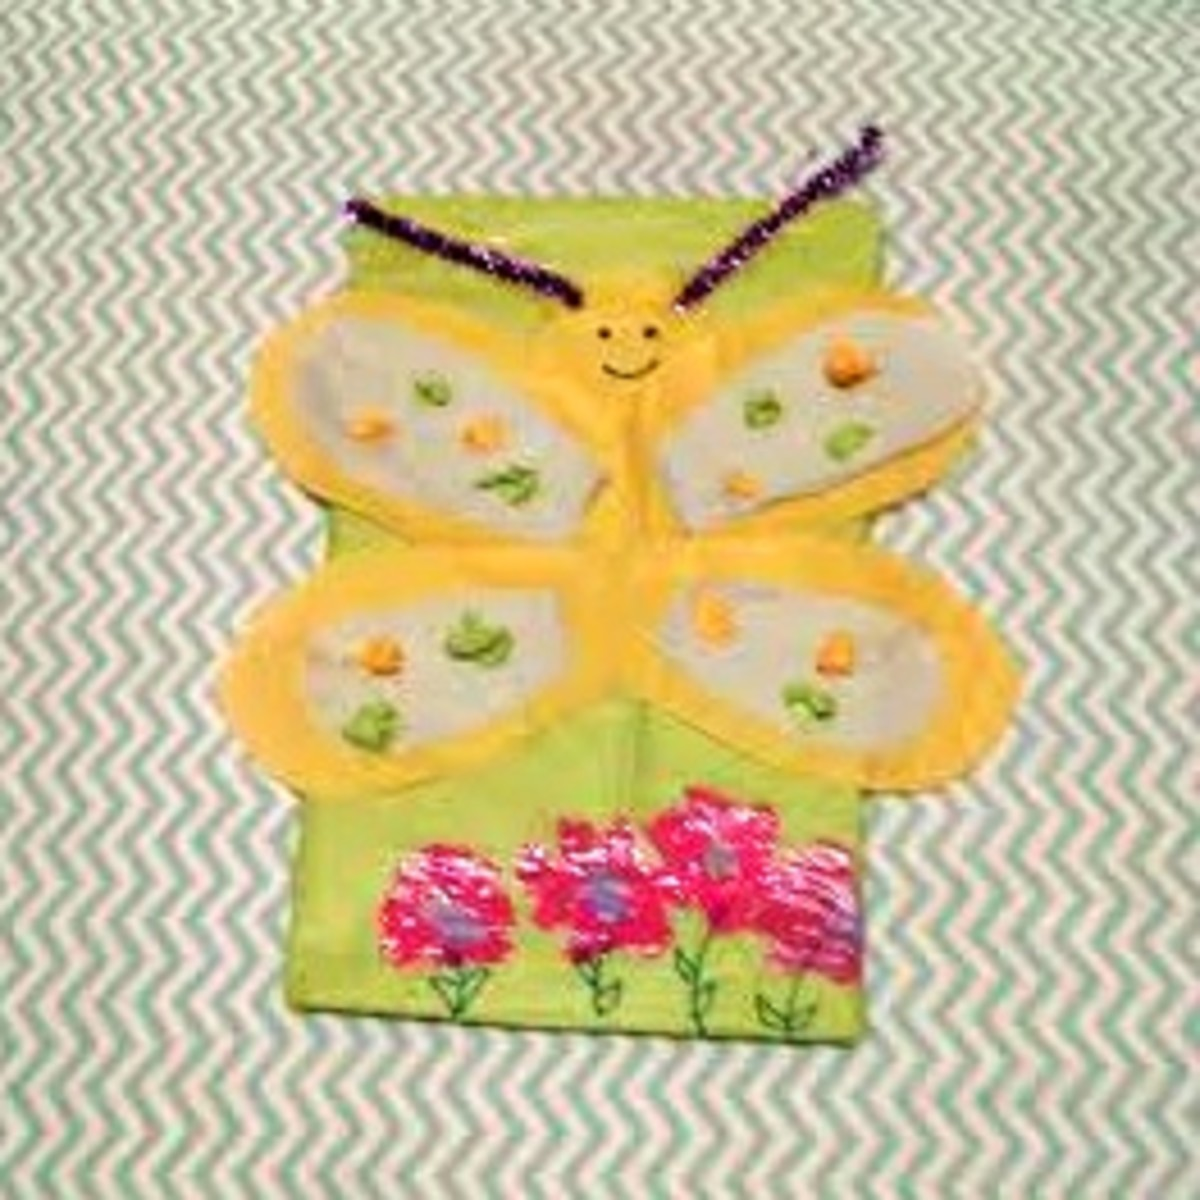 My daughter likes butterflies so I helped her make this one using the back of an oatmeal box, tissue paper and pipe cleaners for the antenna.  She wanted to paint flowers at the bottom, giving it a true Spring feeling!